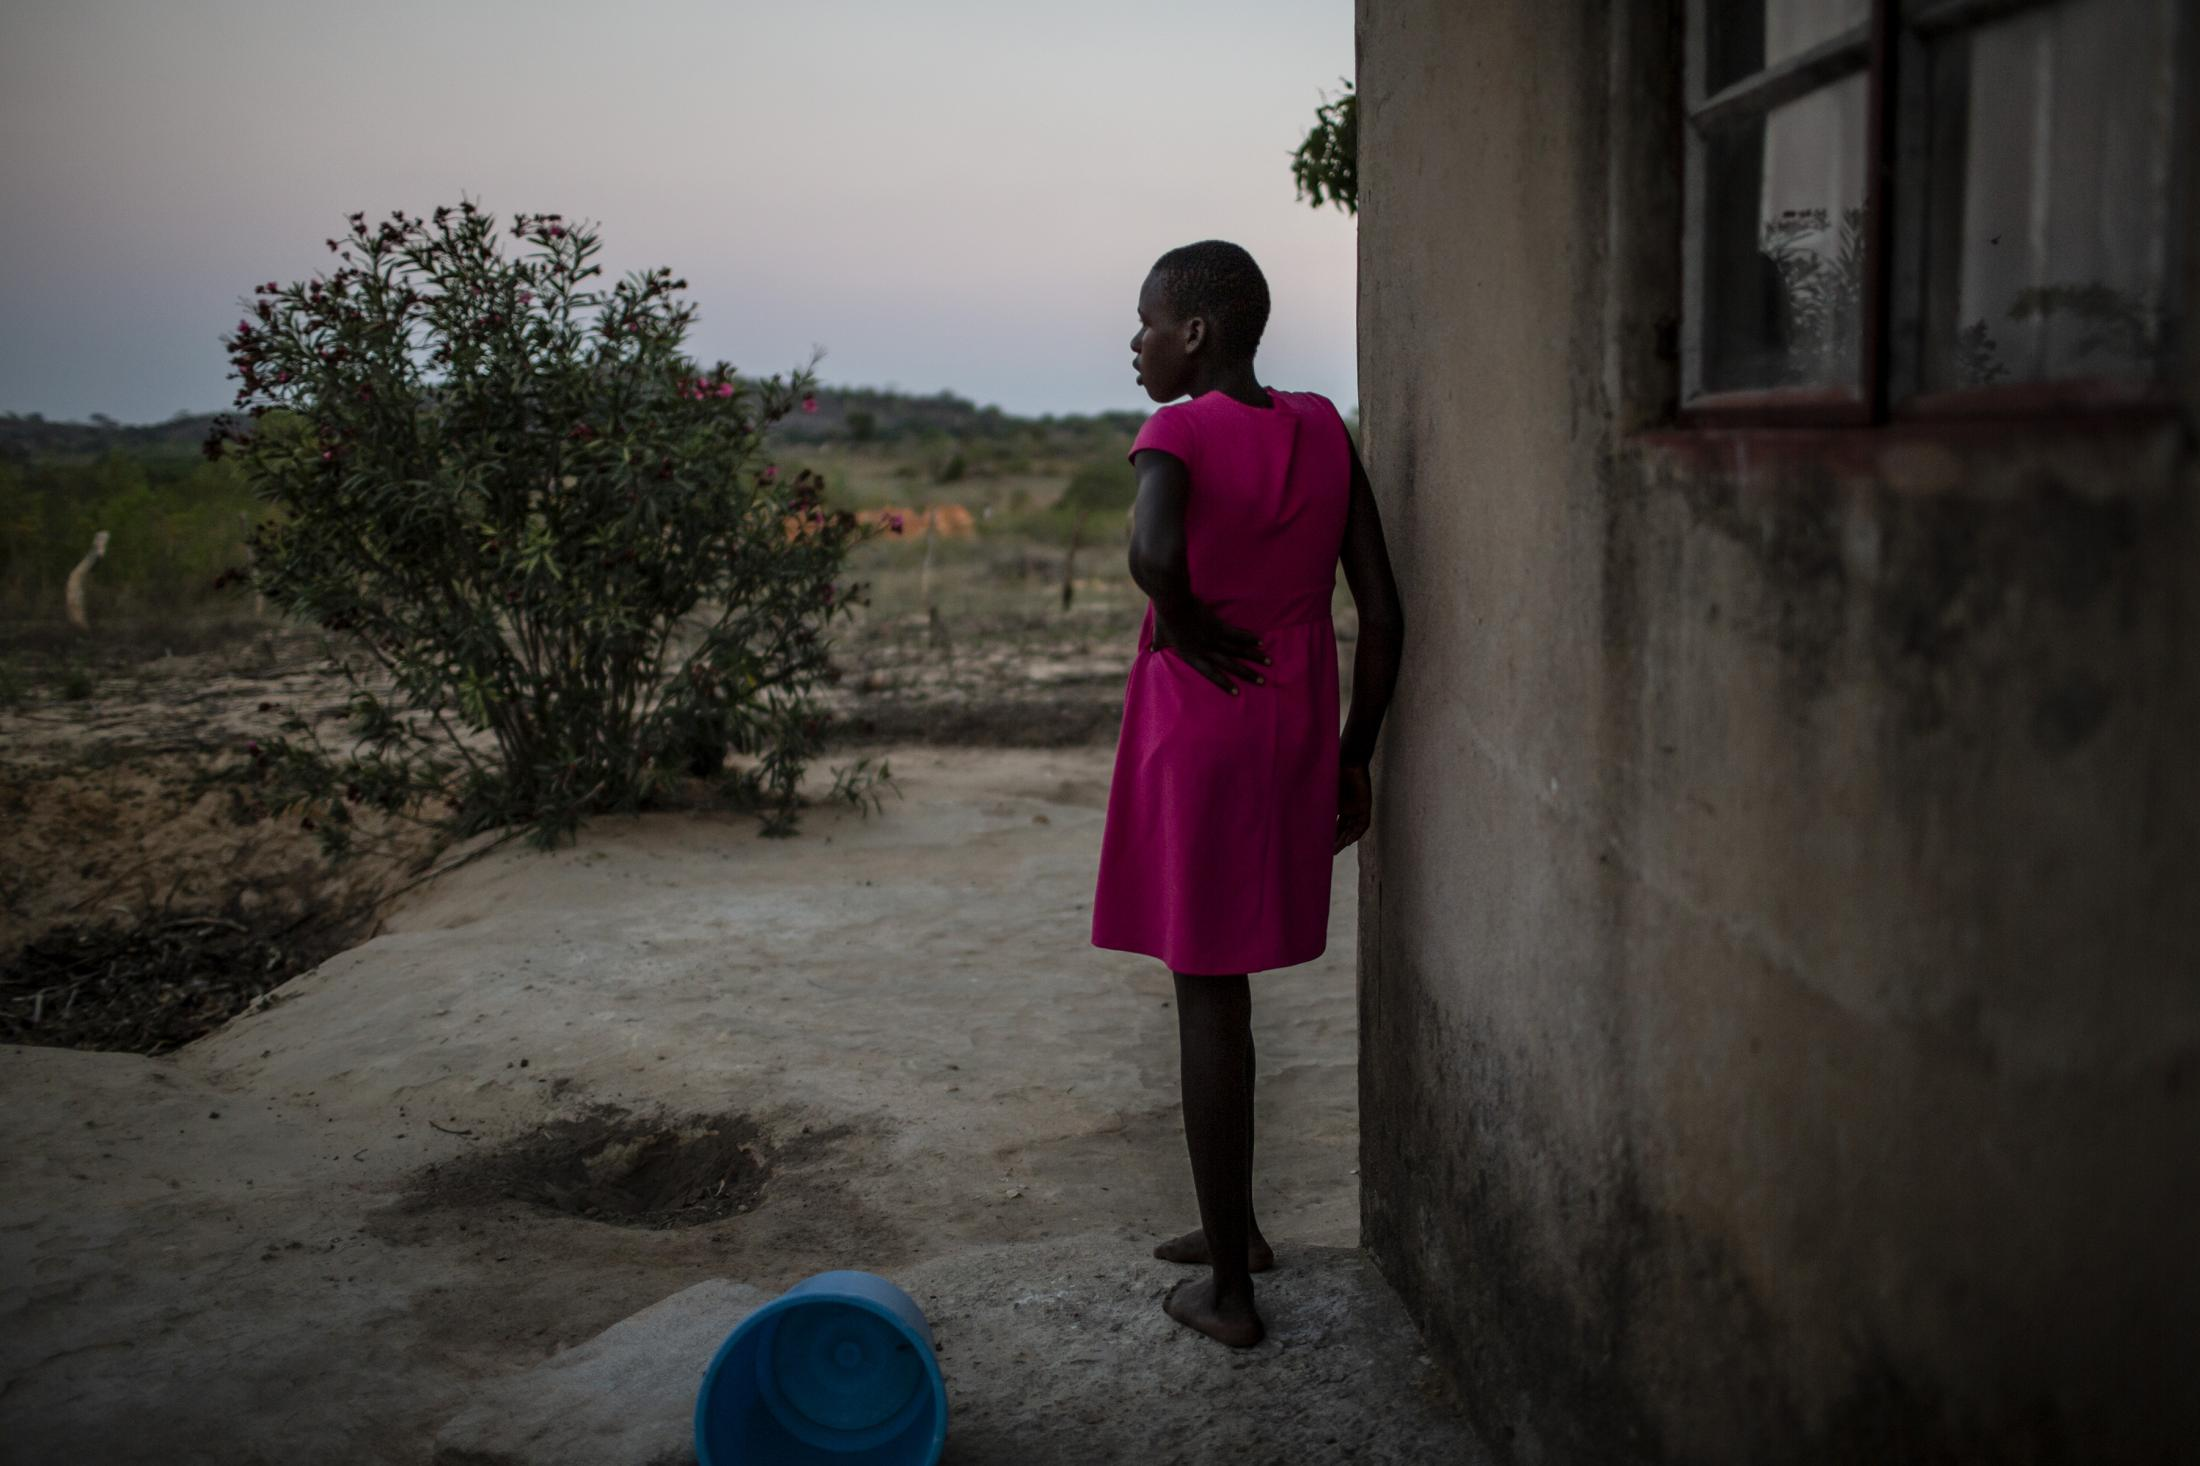 Lana Fariva (14) is pictured at her home which is 7kms away from the R4 Rural Resilience Project in Masvingo, Zimbabwe on October 07, 2019. The family has no electricity or water at home and have to walk for over a km to a spring to fetch water everyday. They have no choice but to use this for drinking and cooking as well, so it will be boiled. The project has benefitted them greatly, providing fresh fish and vegetables for the family. Tariro has also gained a lot of knowledge about farming and financial literacy and is able to implement these strategies in other aspects of her life. She has now started her own poultry and goat farming initiative.